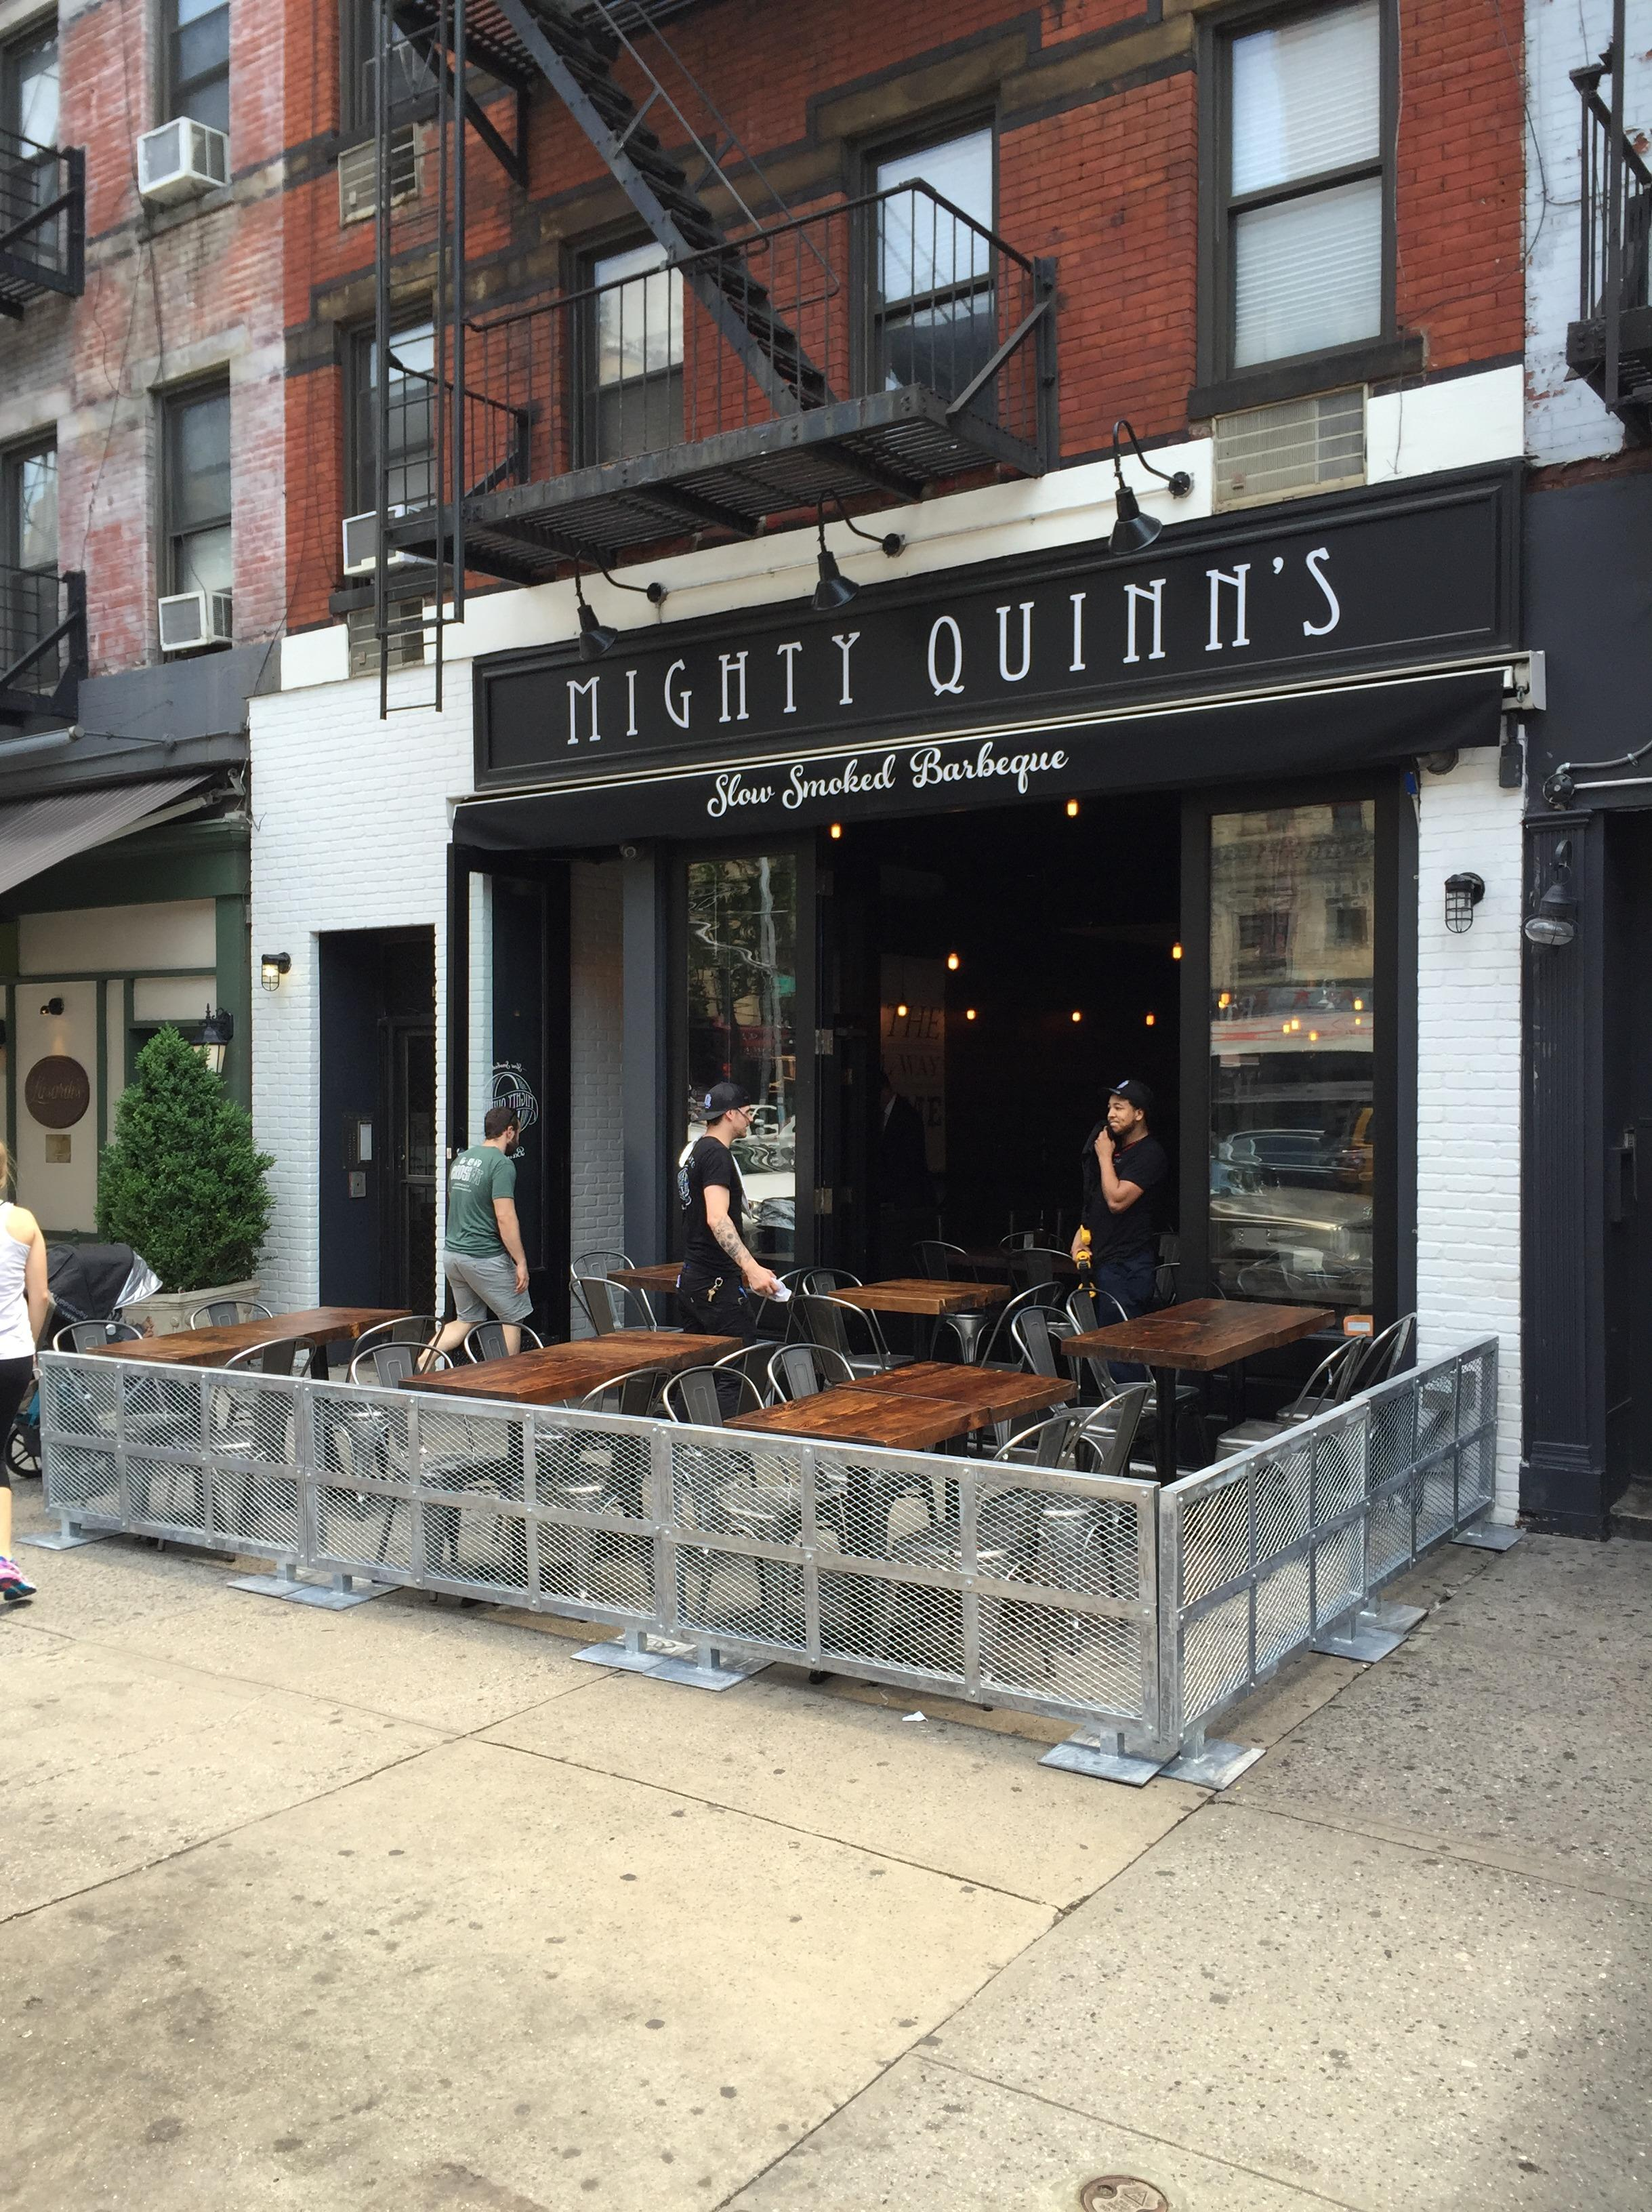 Mighty Quinn's Barbeque image 0